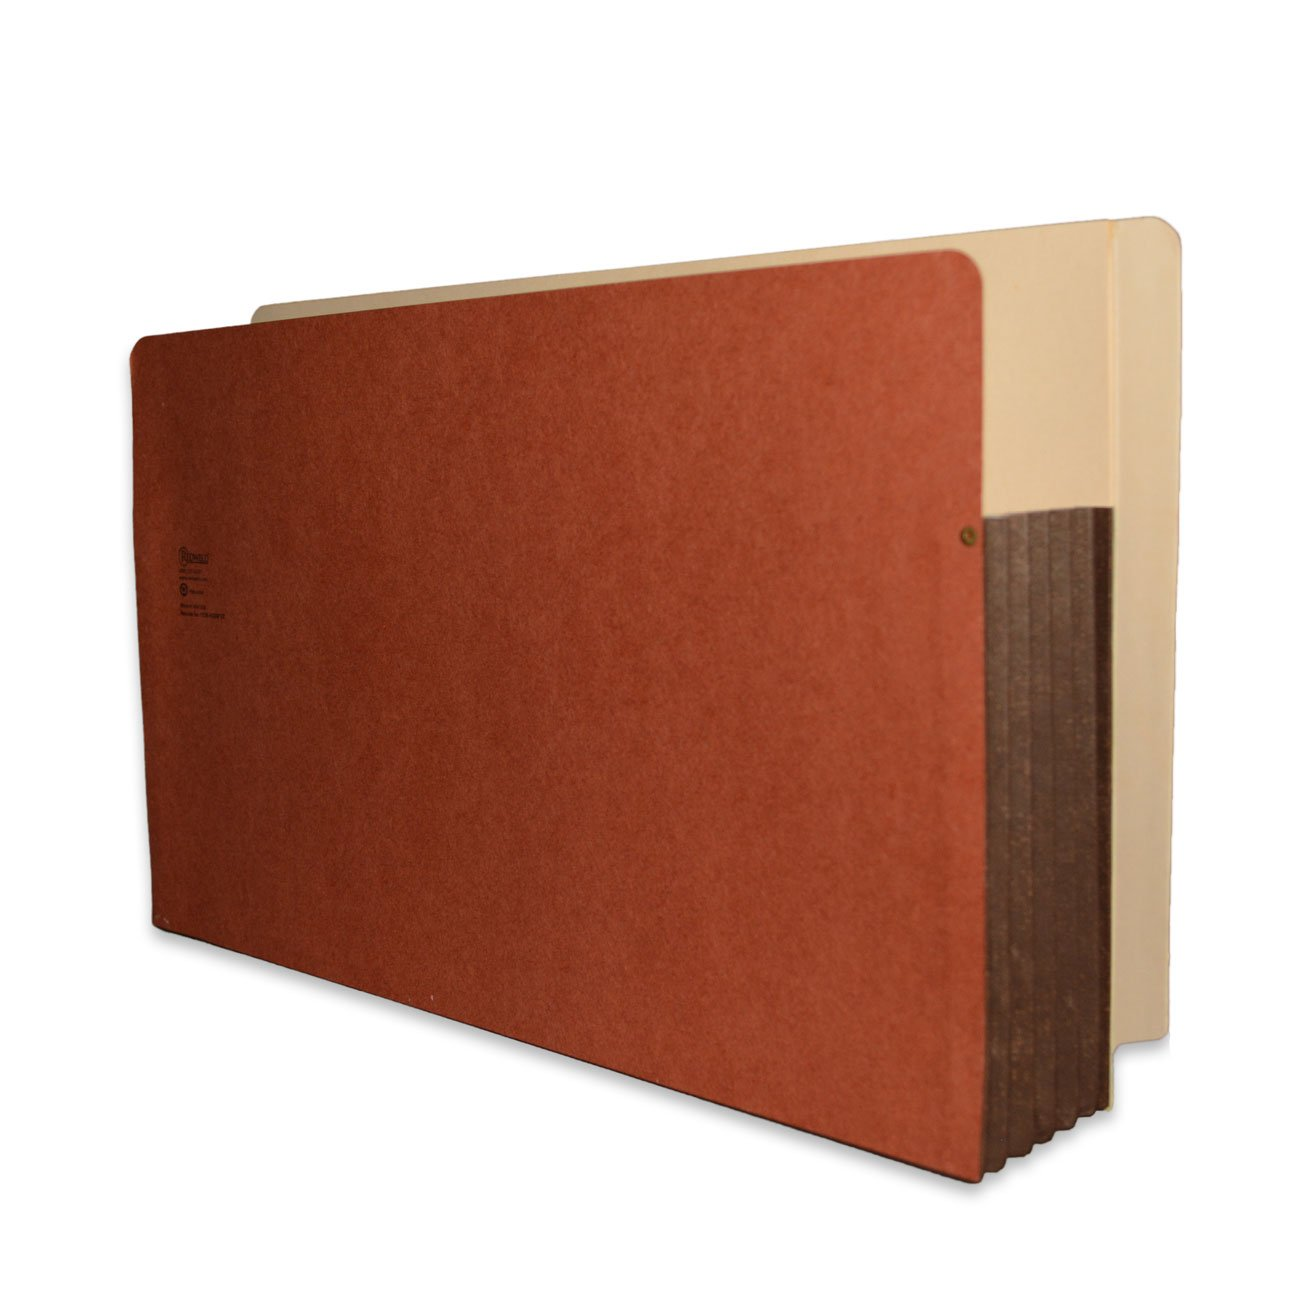 Redweld End Tab File Pocket, Legal Size with 5 1/4'' Fully Reinforced Tyvek Gusset, 50 per Carton